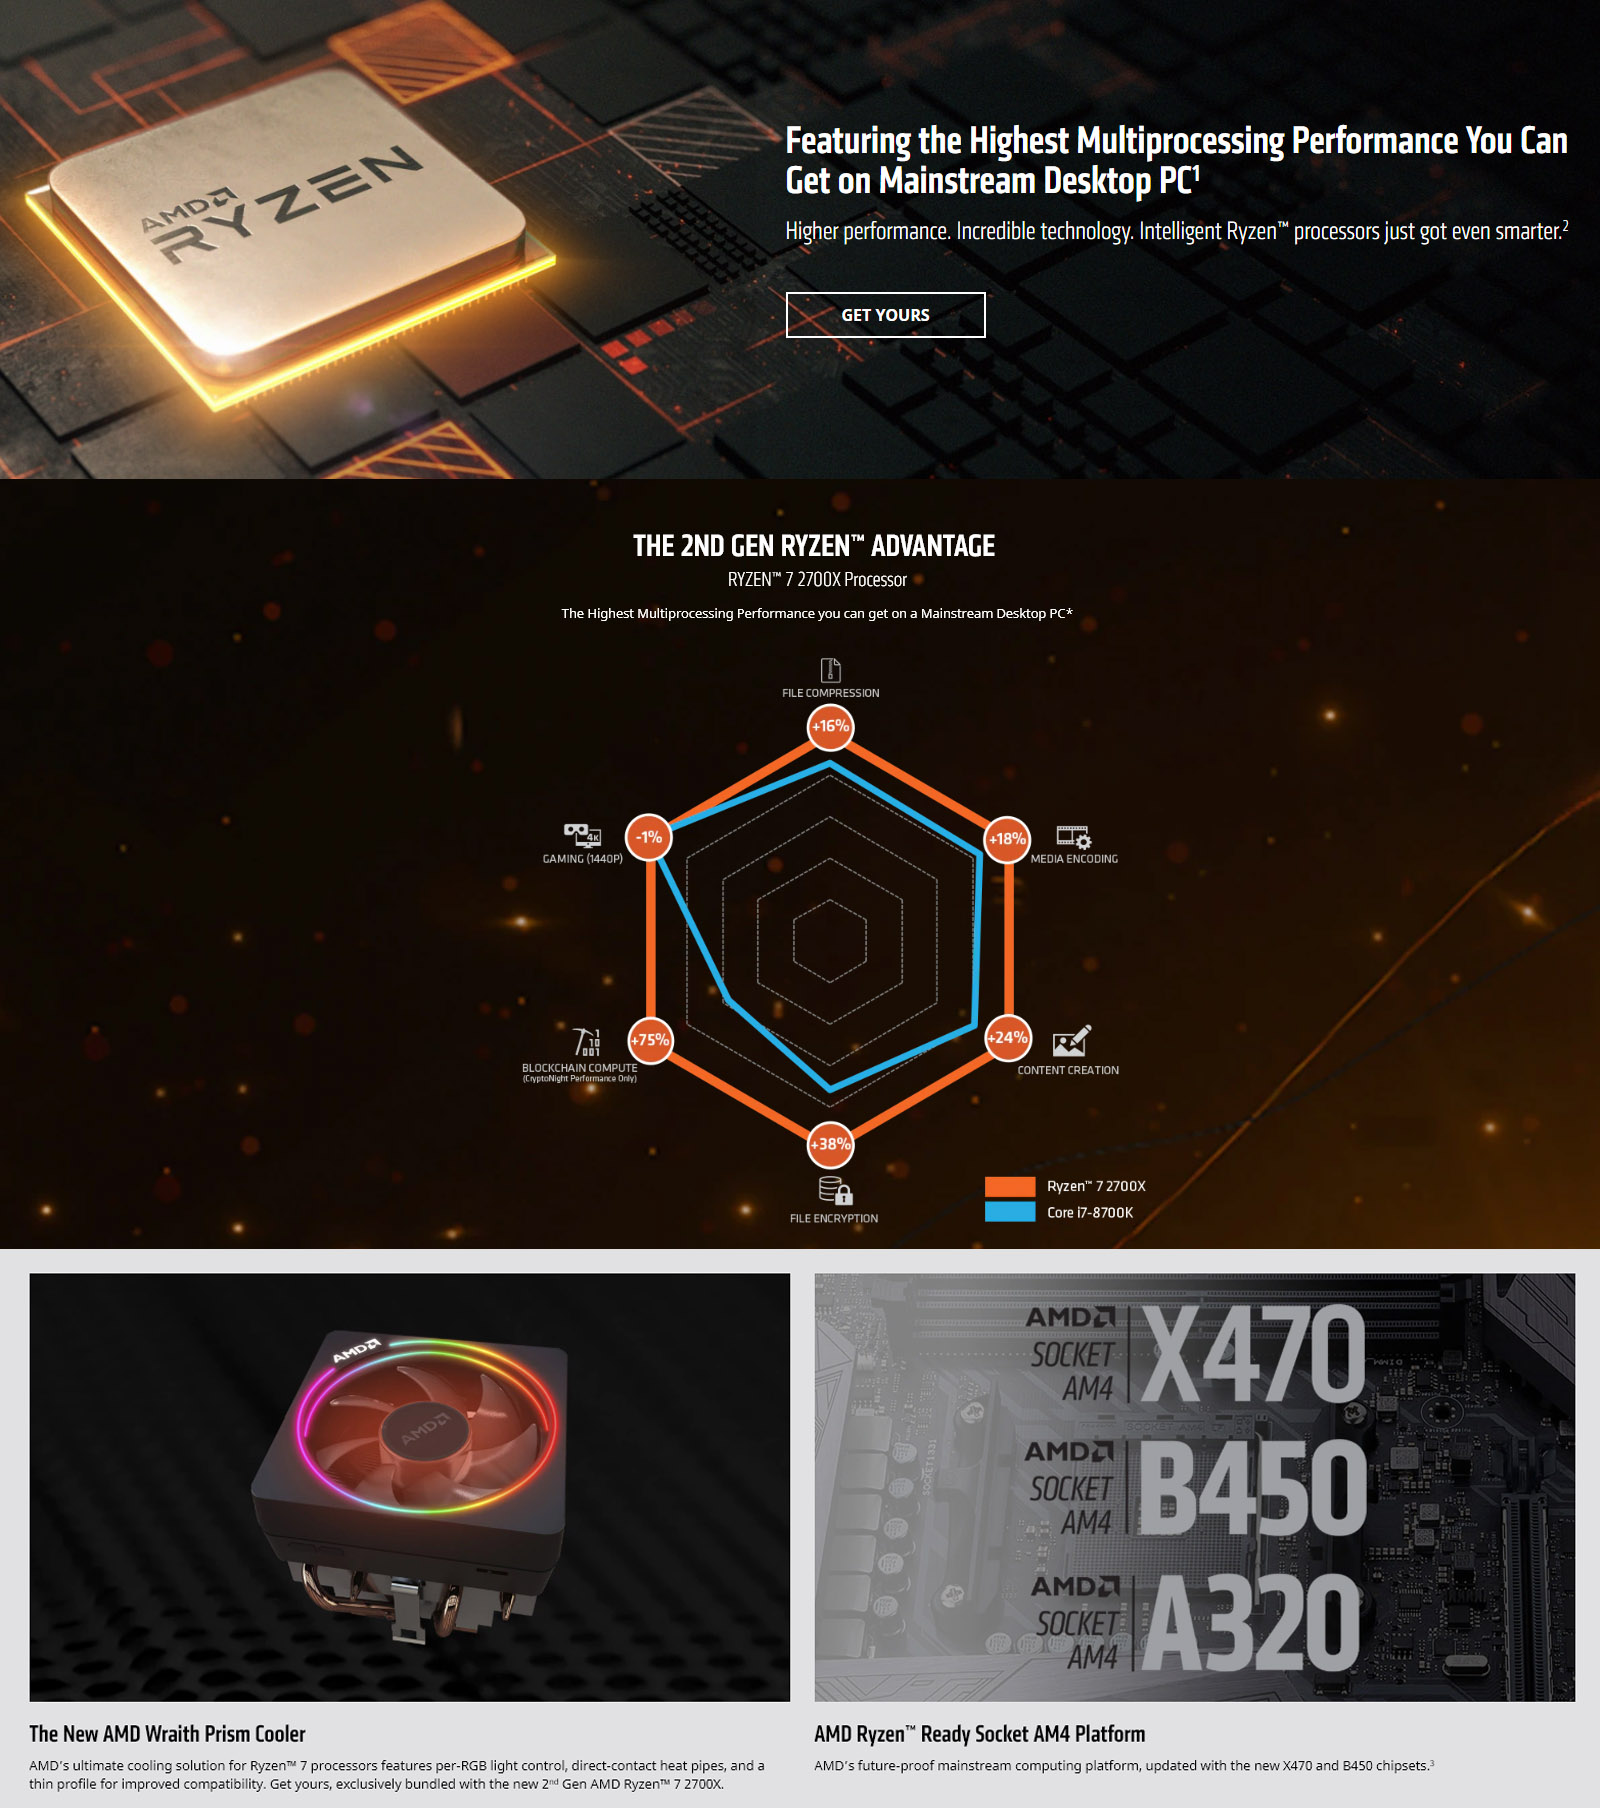 AMD Ryzen 7 2700X 8 Core 50th Anniversary Edition AM4 3 7GHz CPU Processor  with Wraith Prism Cooler